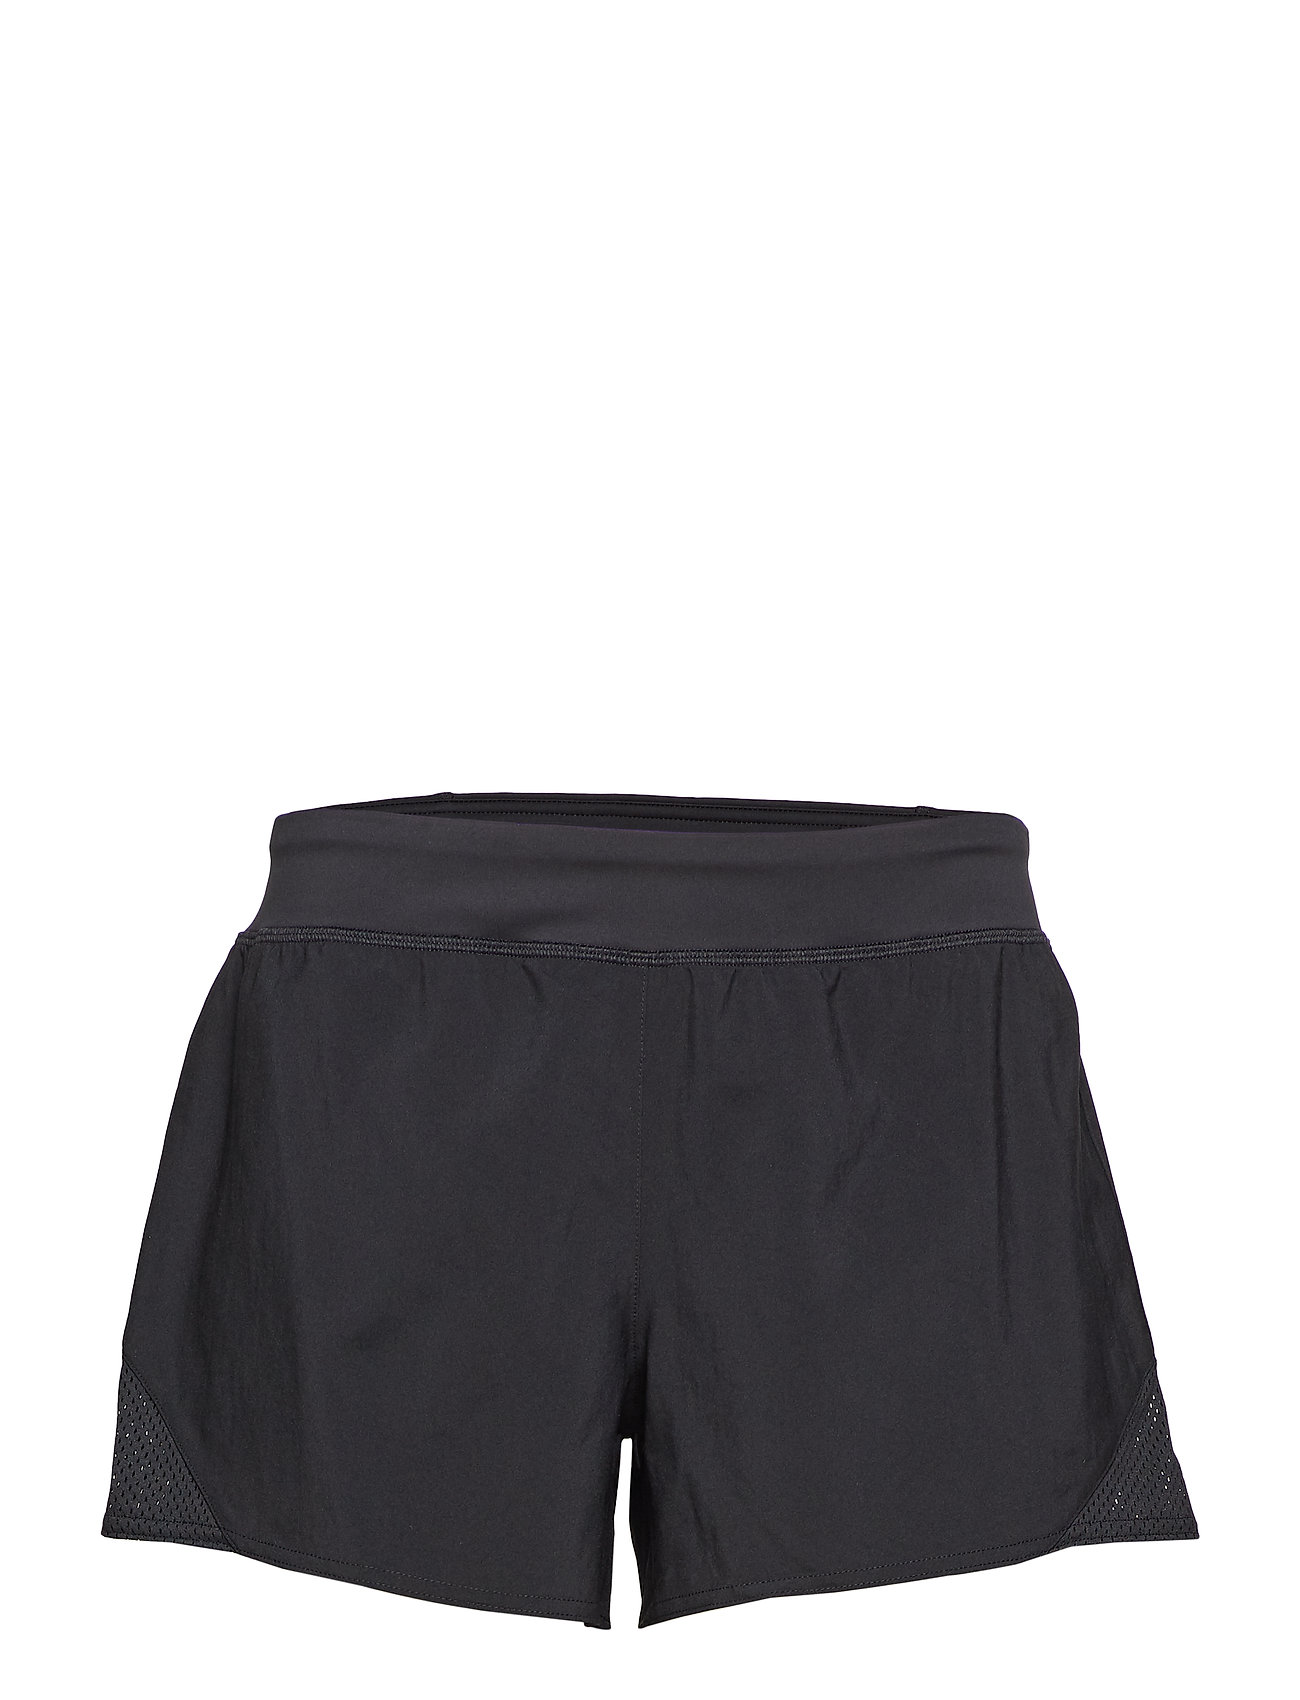 Reebok Performance WOR KNIT WOVEN SHORT - BLACK